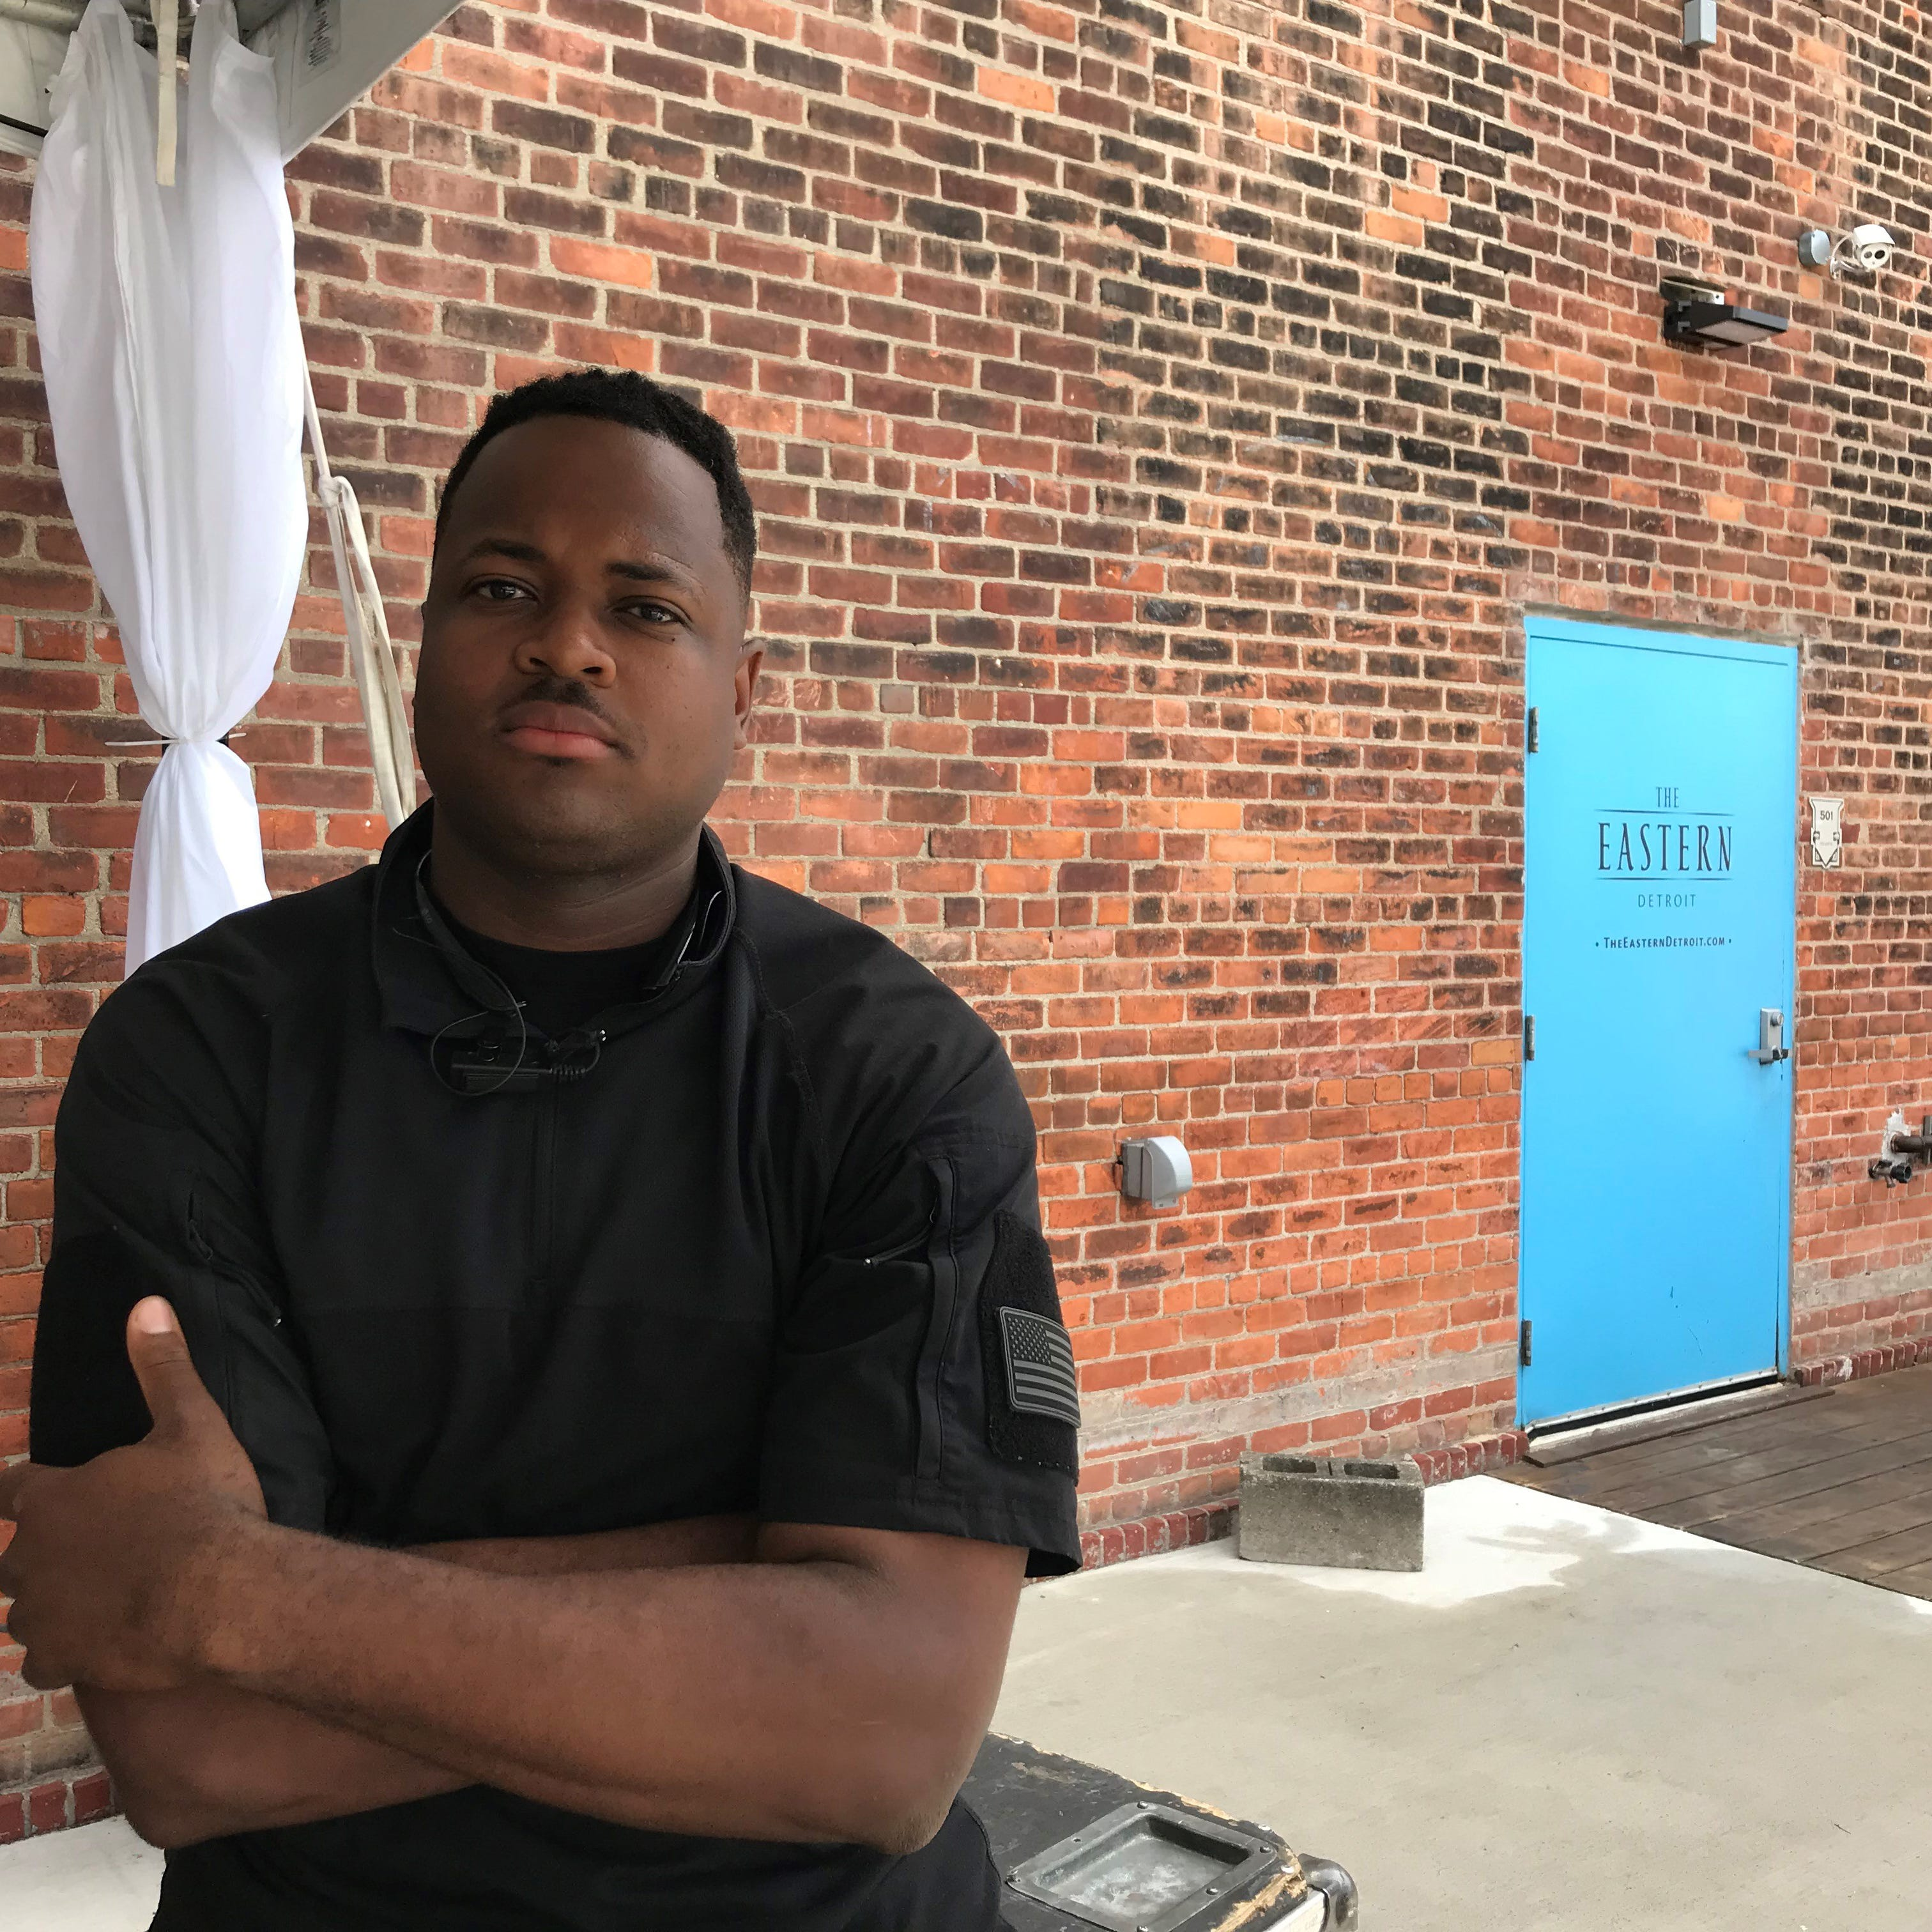 Ibrahim Mission sits outside The Eastern, an Eastern Market event space where a prominent white business-owner spat in his face Tuesday, July 17, 2018.